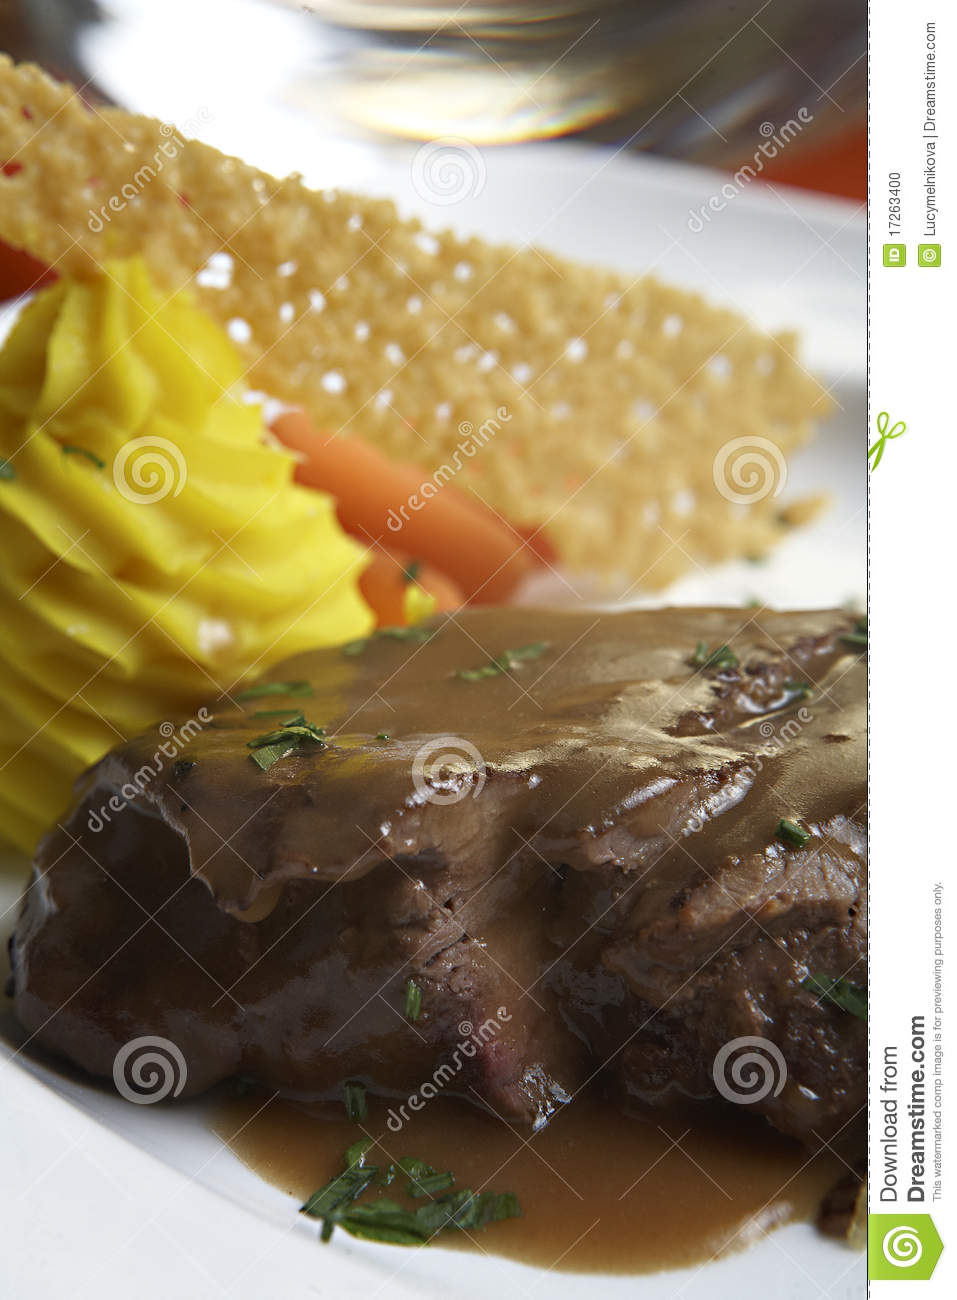 Beef File With Brown Sauce Stock Photo - Image: 17263400